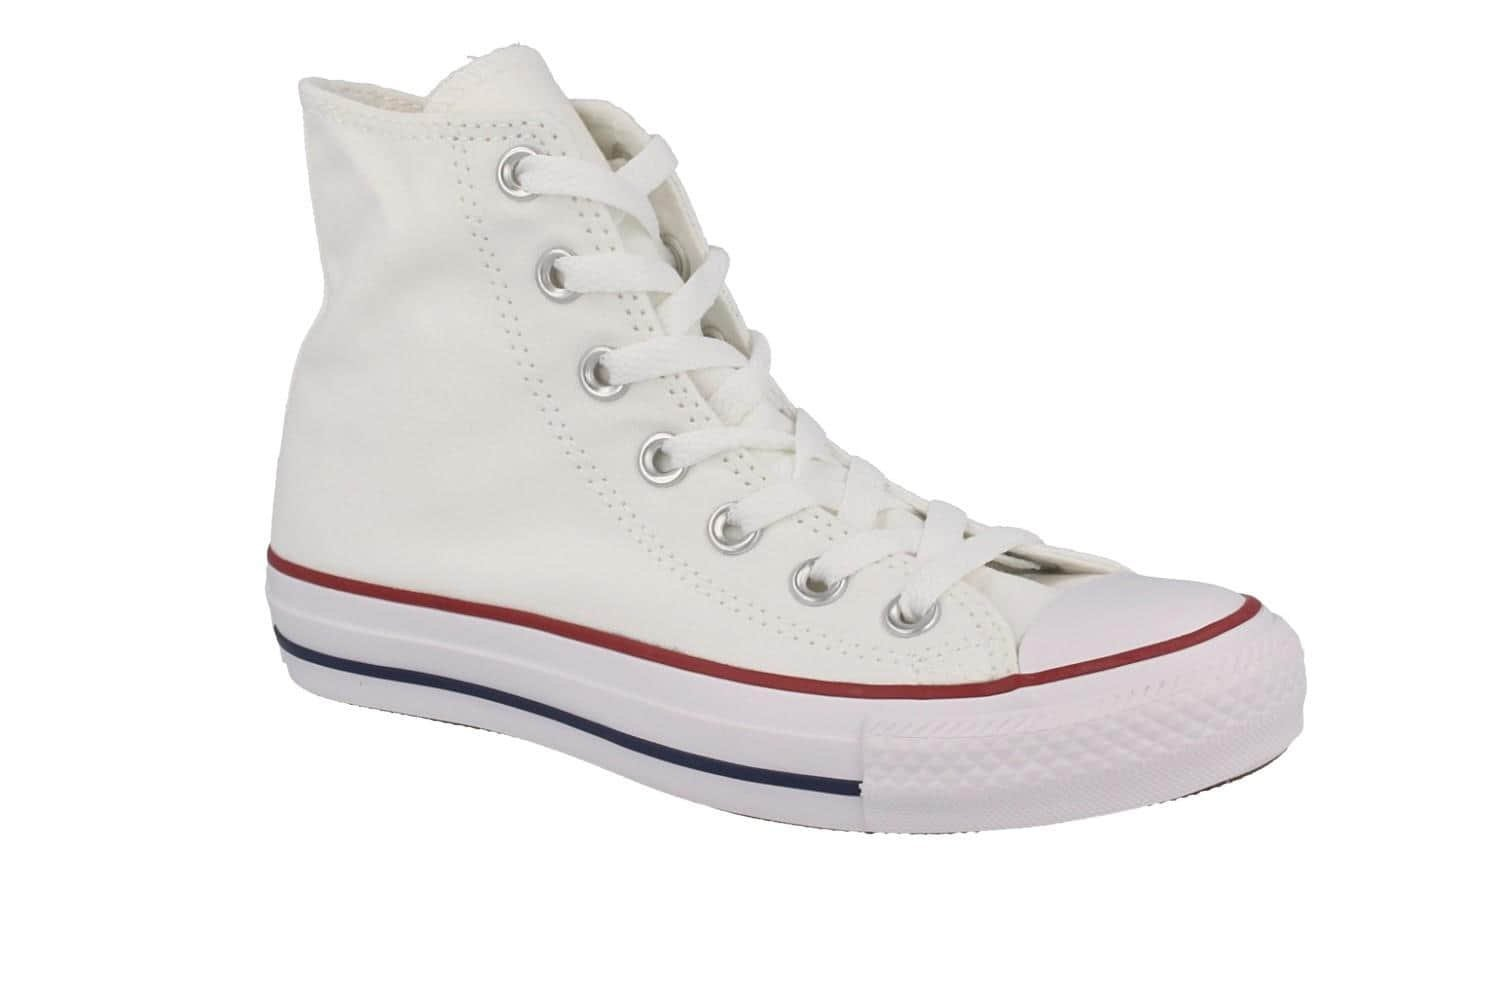 Converse Unisex Chuck Taylor All-Star High-Top Casual Sneakers in Classic Style and Color and Durable Canvas Uppers B00BD2686Y 7 D(M) US|Unbleached White